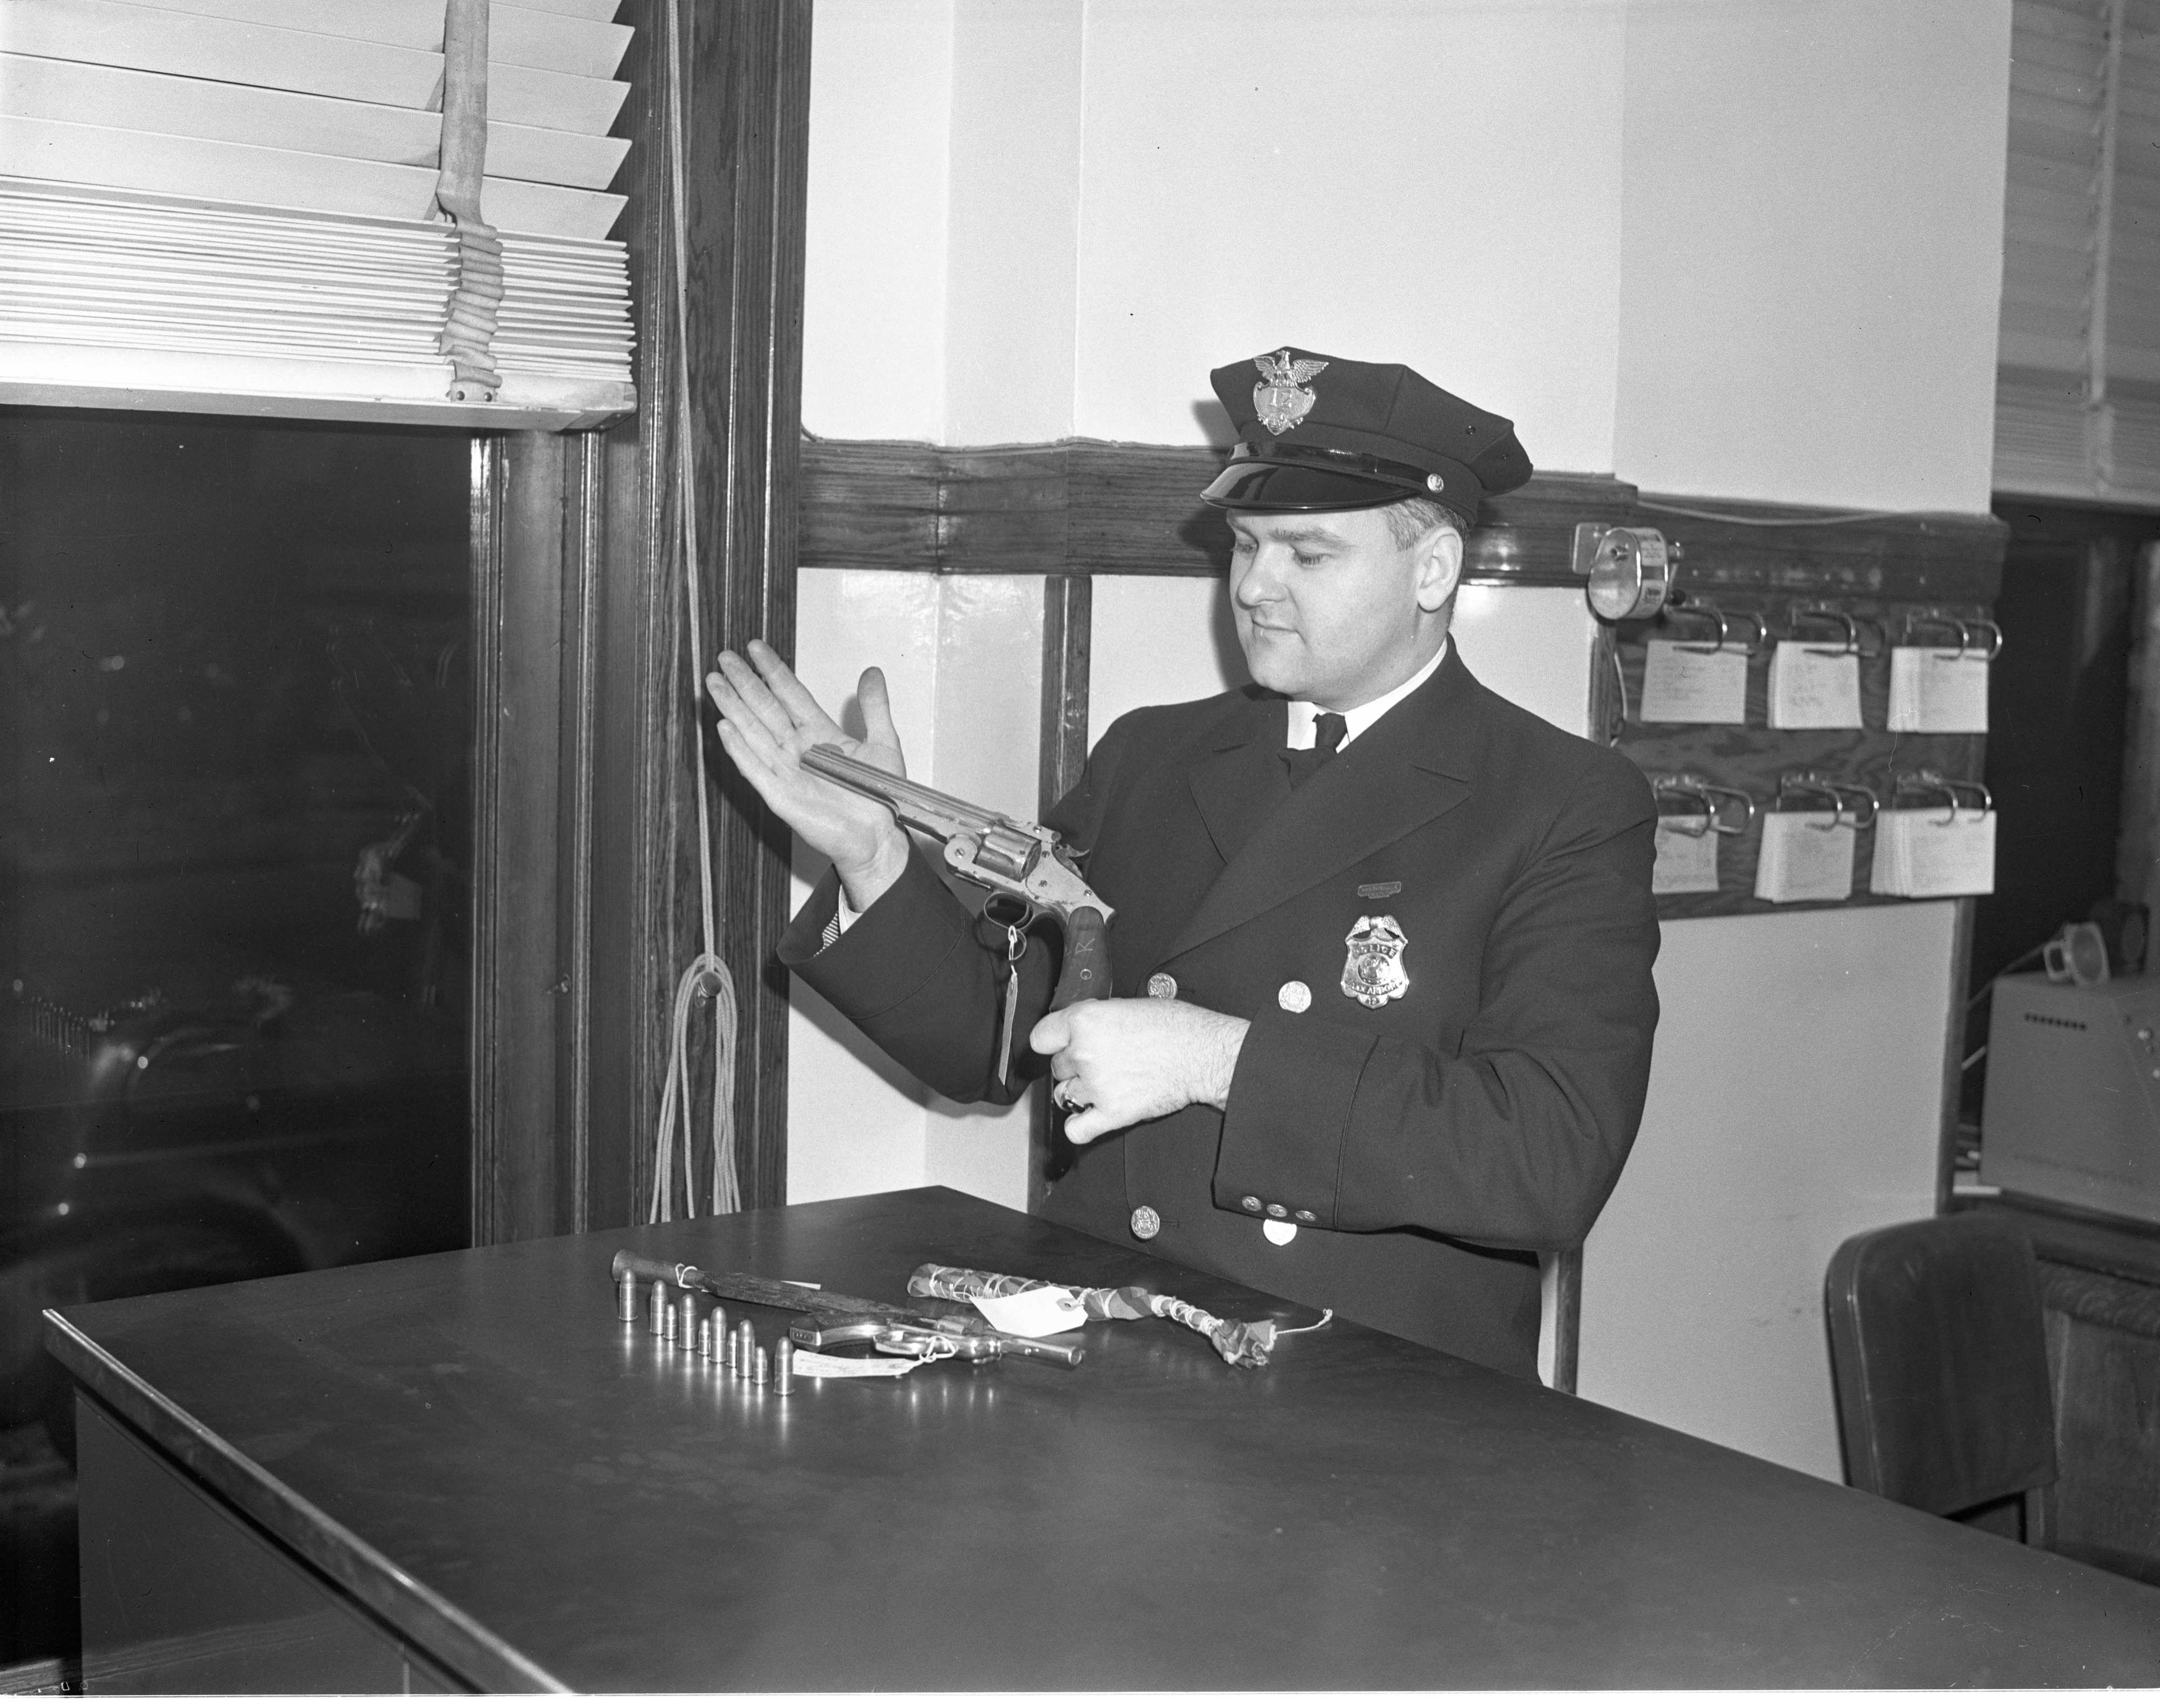 Ann Arbor Police Patrolman Rolland Gainsley Examines A Revolver, January 1941 image